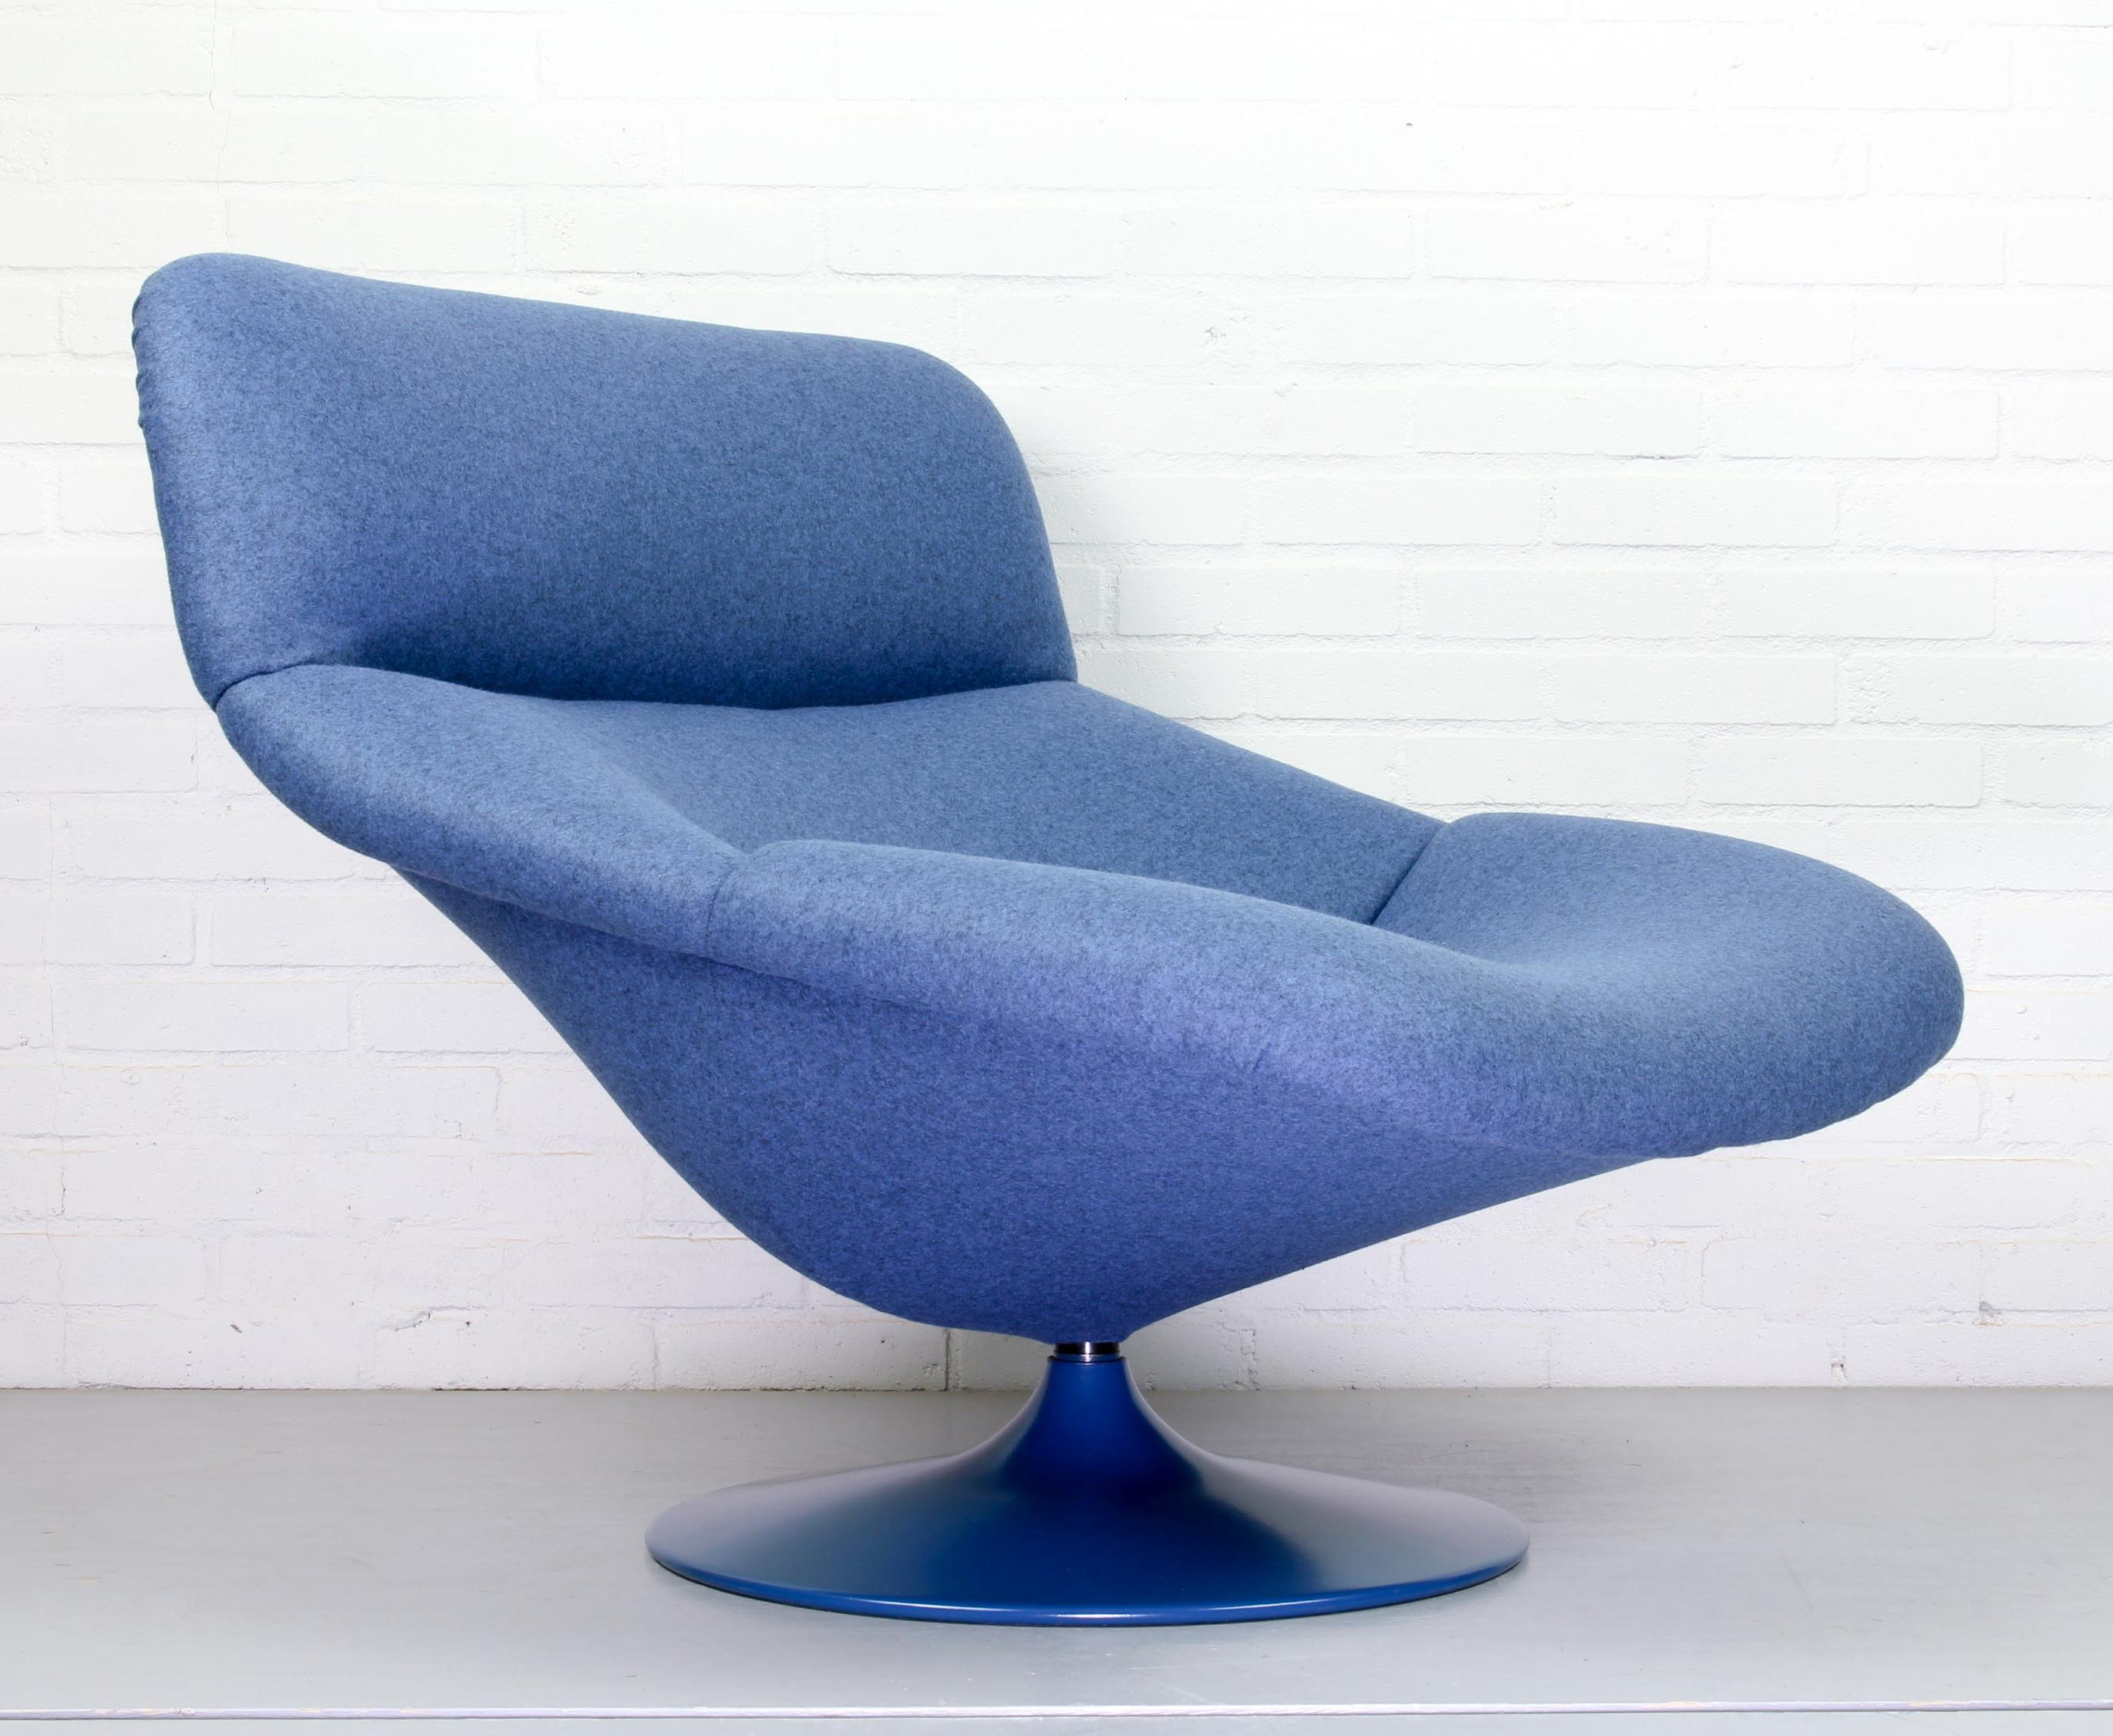 Vintage F518 Lounge Swivel Chair By Geoffrey Harcourt For Artifort 1970s